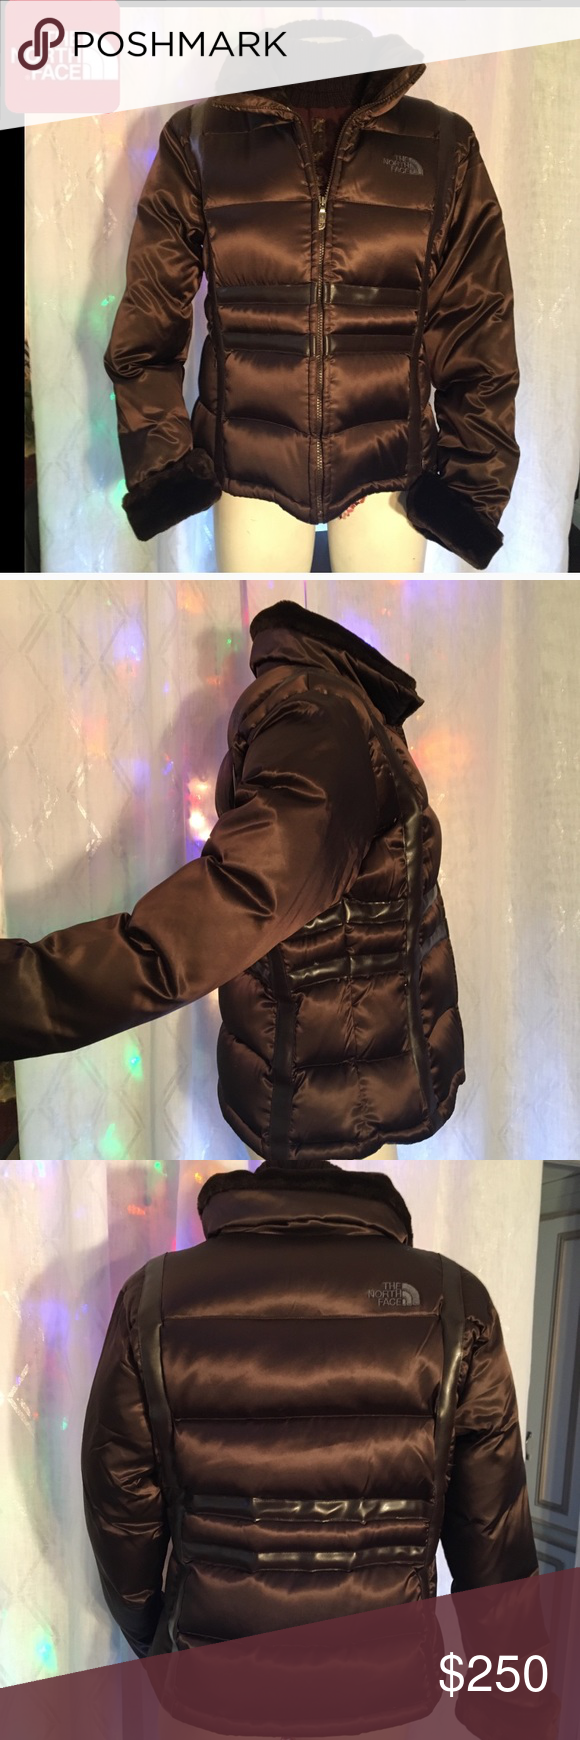 The North Face 550 The North Face Warm Jacket North Face Jacket [ 1740 x 580 Pixel ]